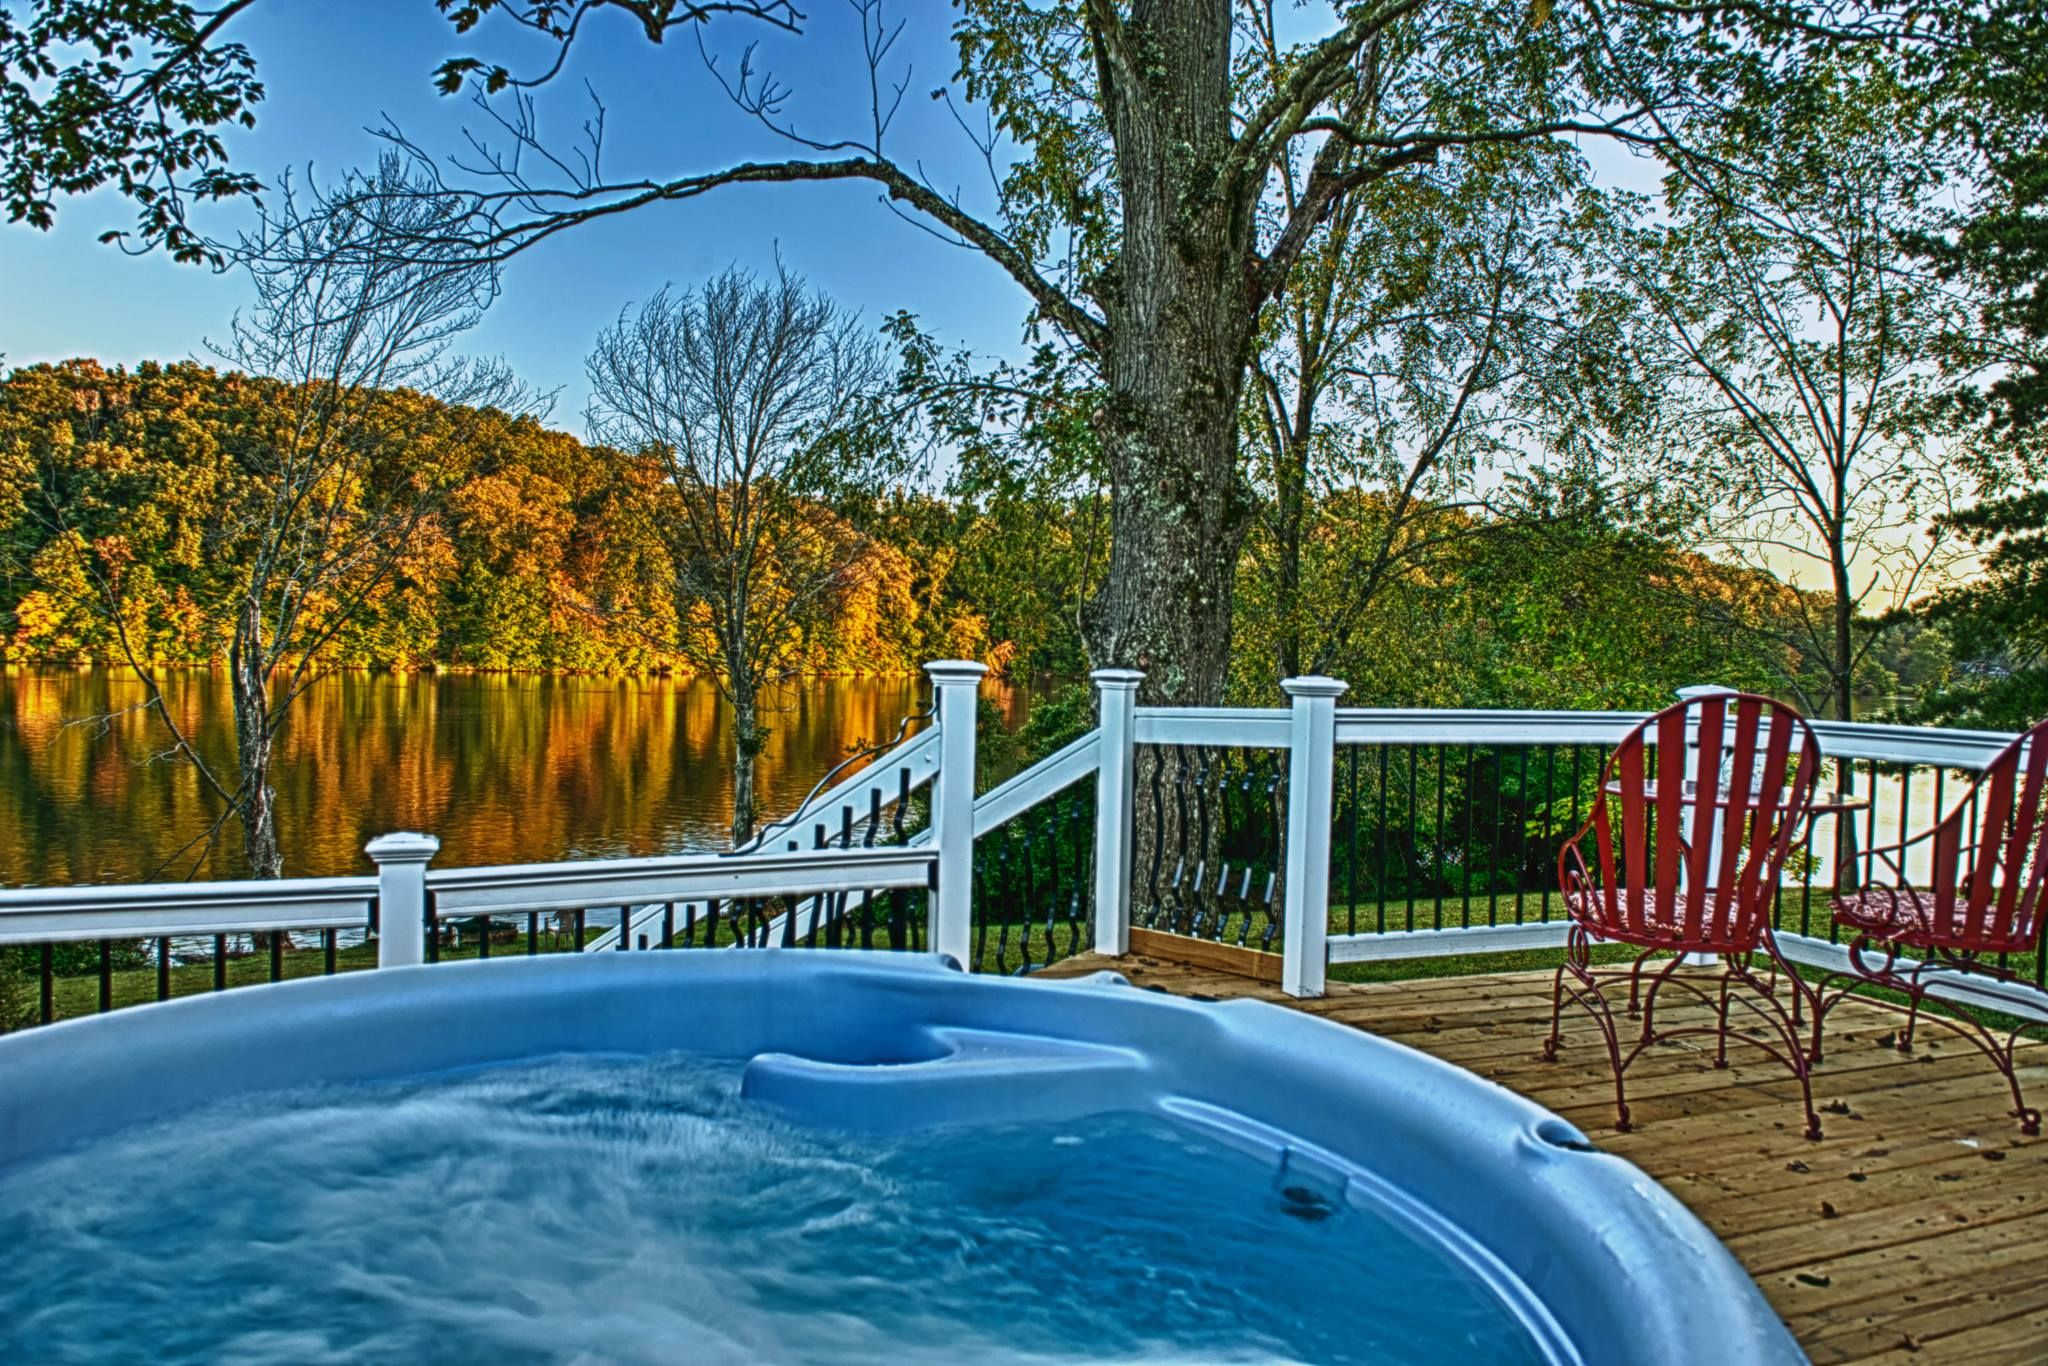 dayton to in our knowledge ohio tubs pools great never oh sell acquiring has with w tub swimming all do hotels direct the will and you hot while we assist spas friendly need staff